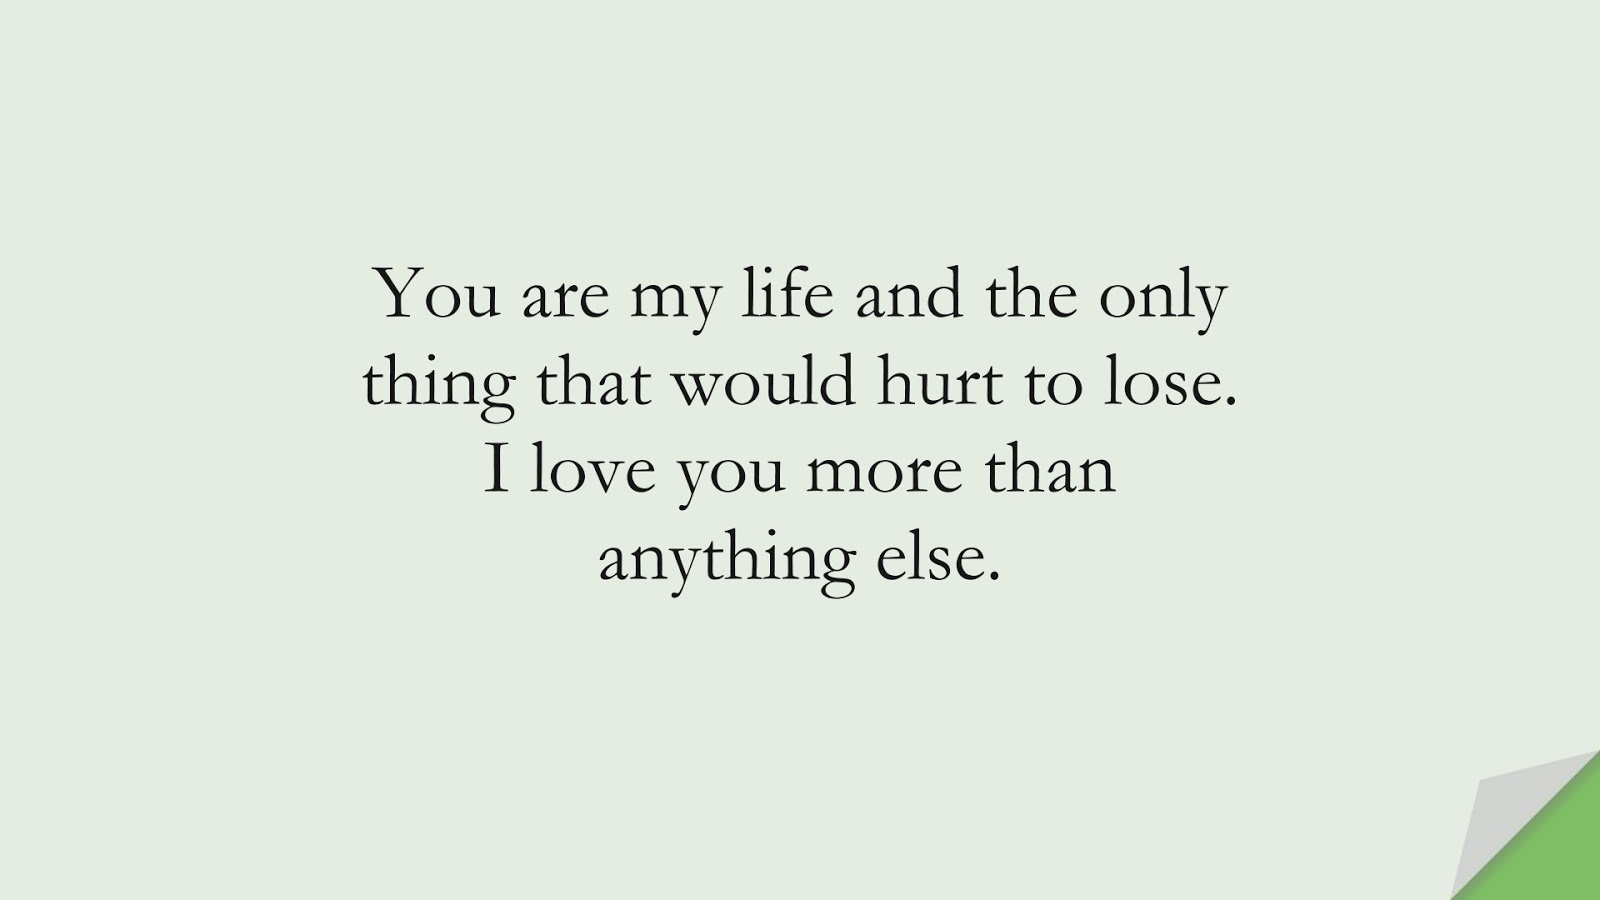 You are my life and the only thing that would hurt to lose. I love you more than anything else.FALSE